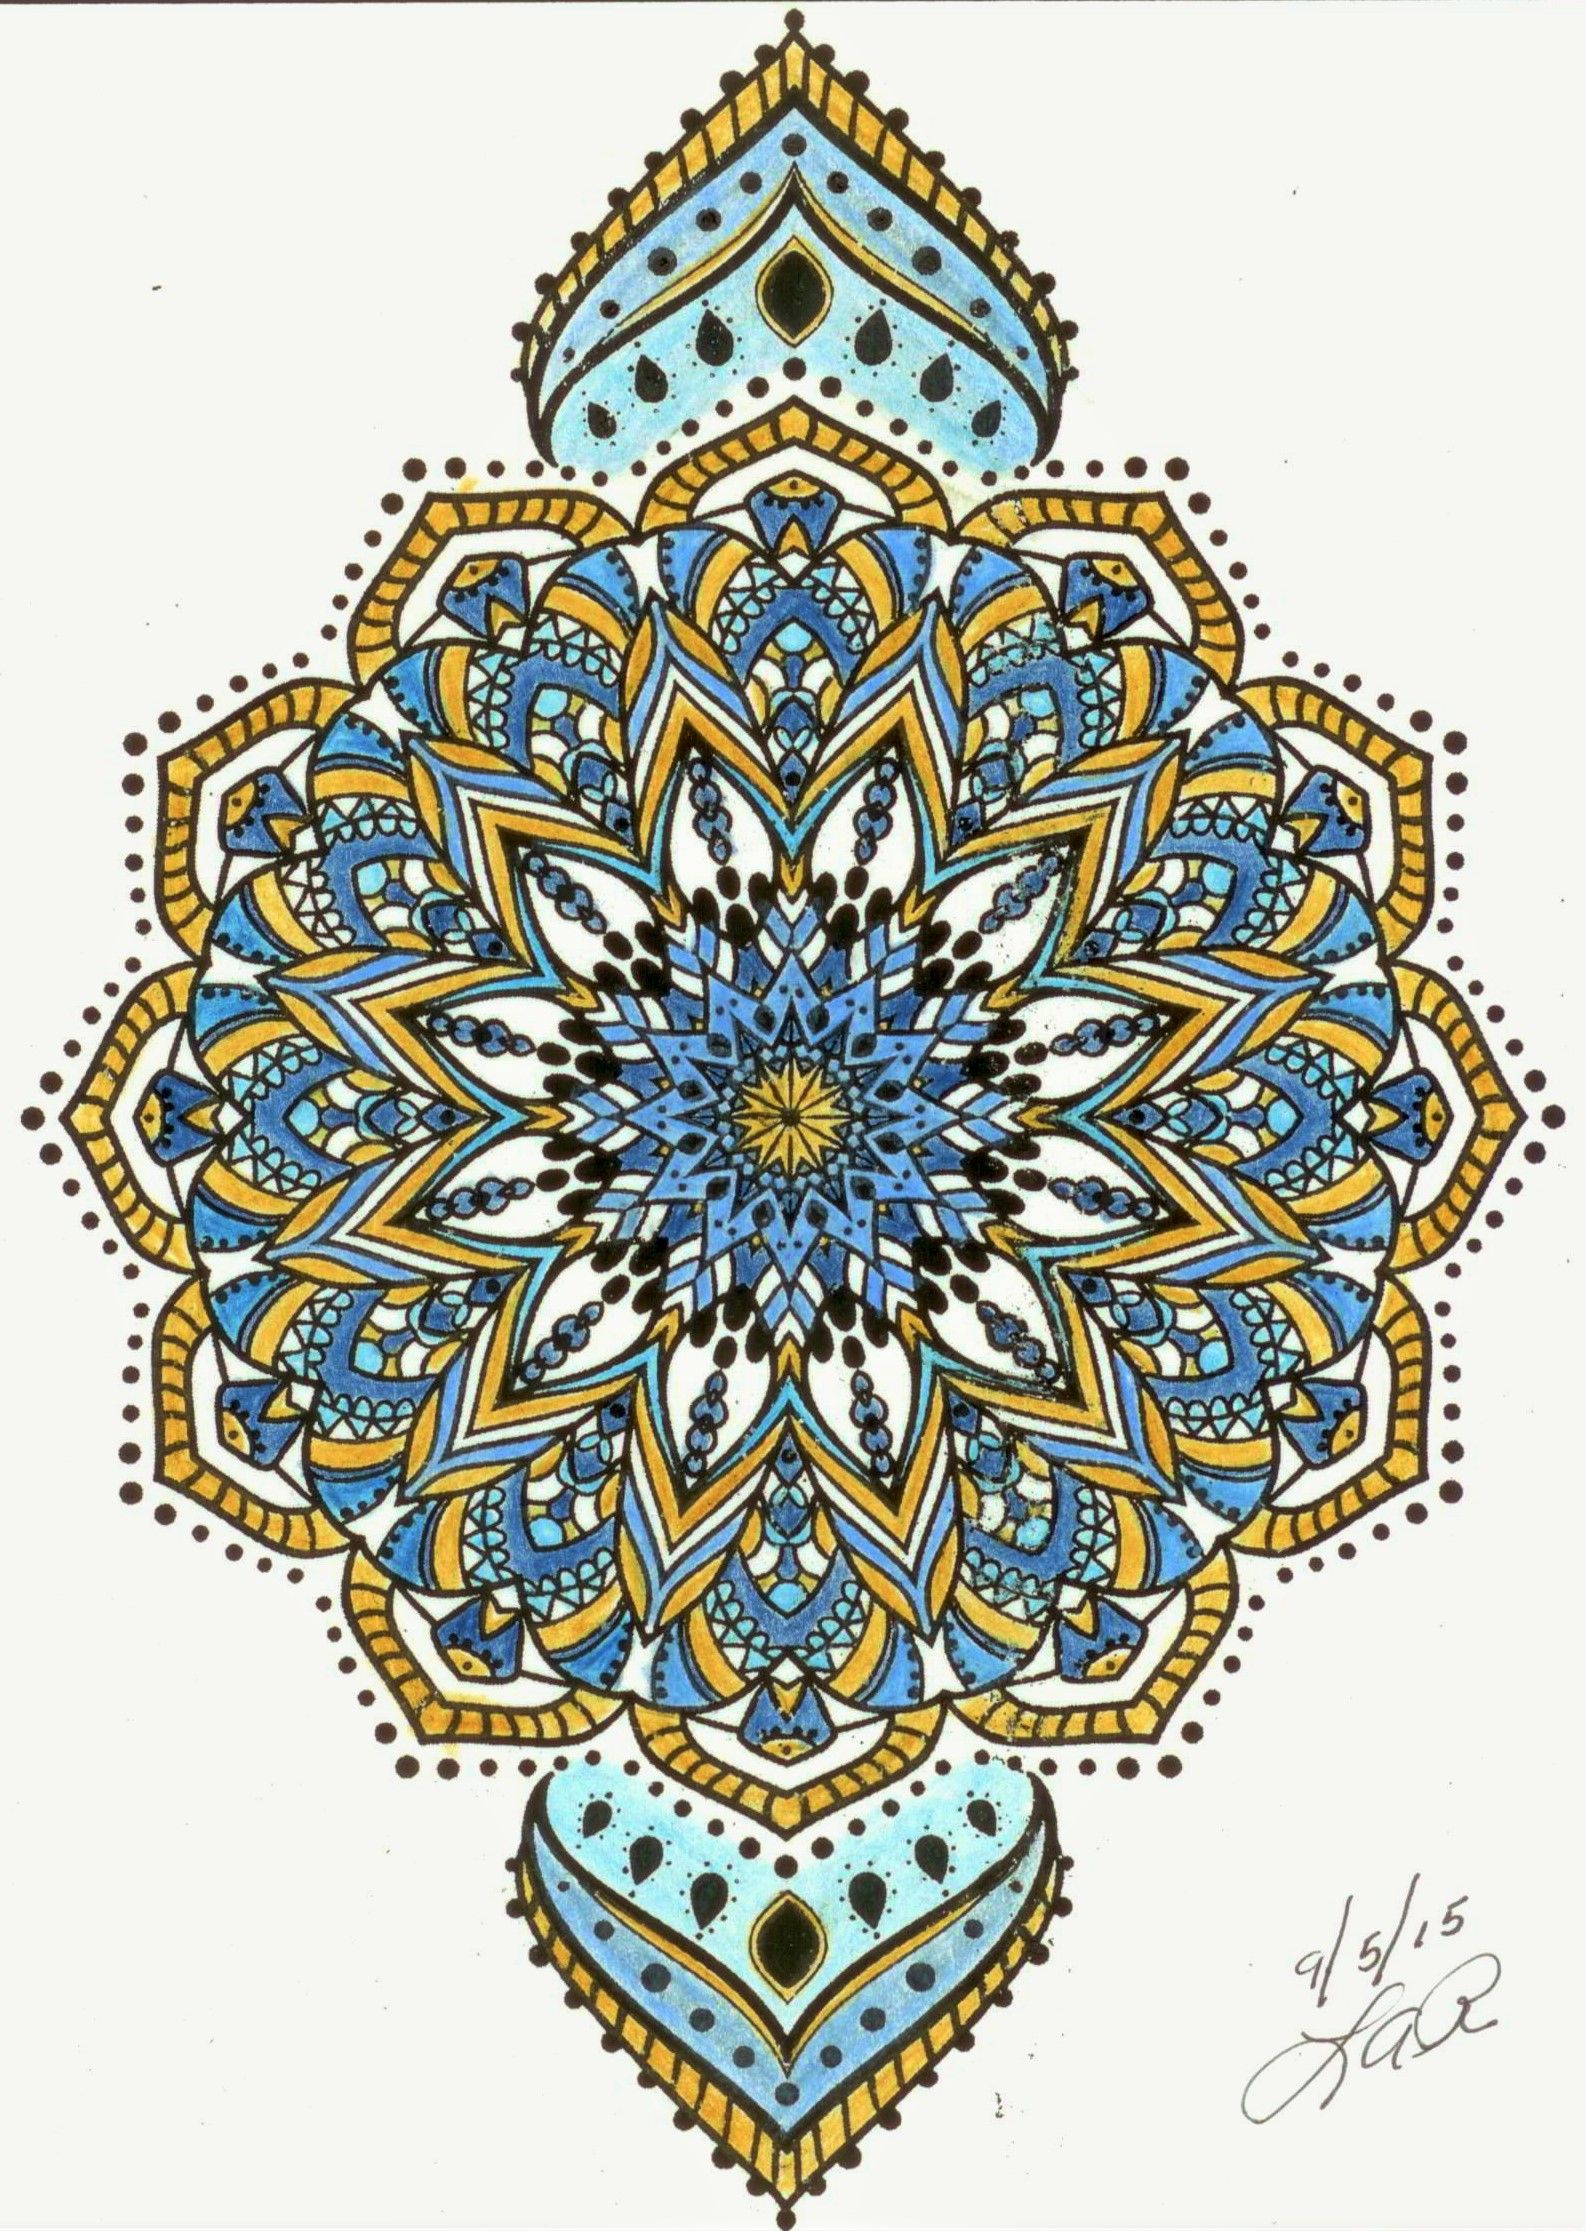 Pin by Lynn Rose on MY COLORINGS | Pinterest | Mandala, Mandalas and ...